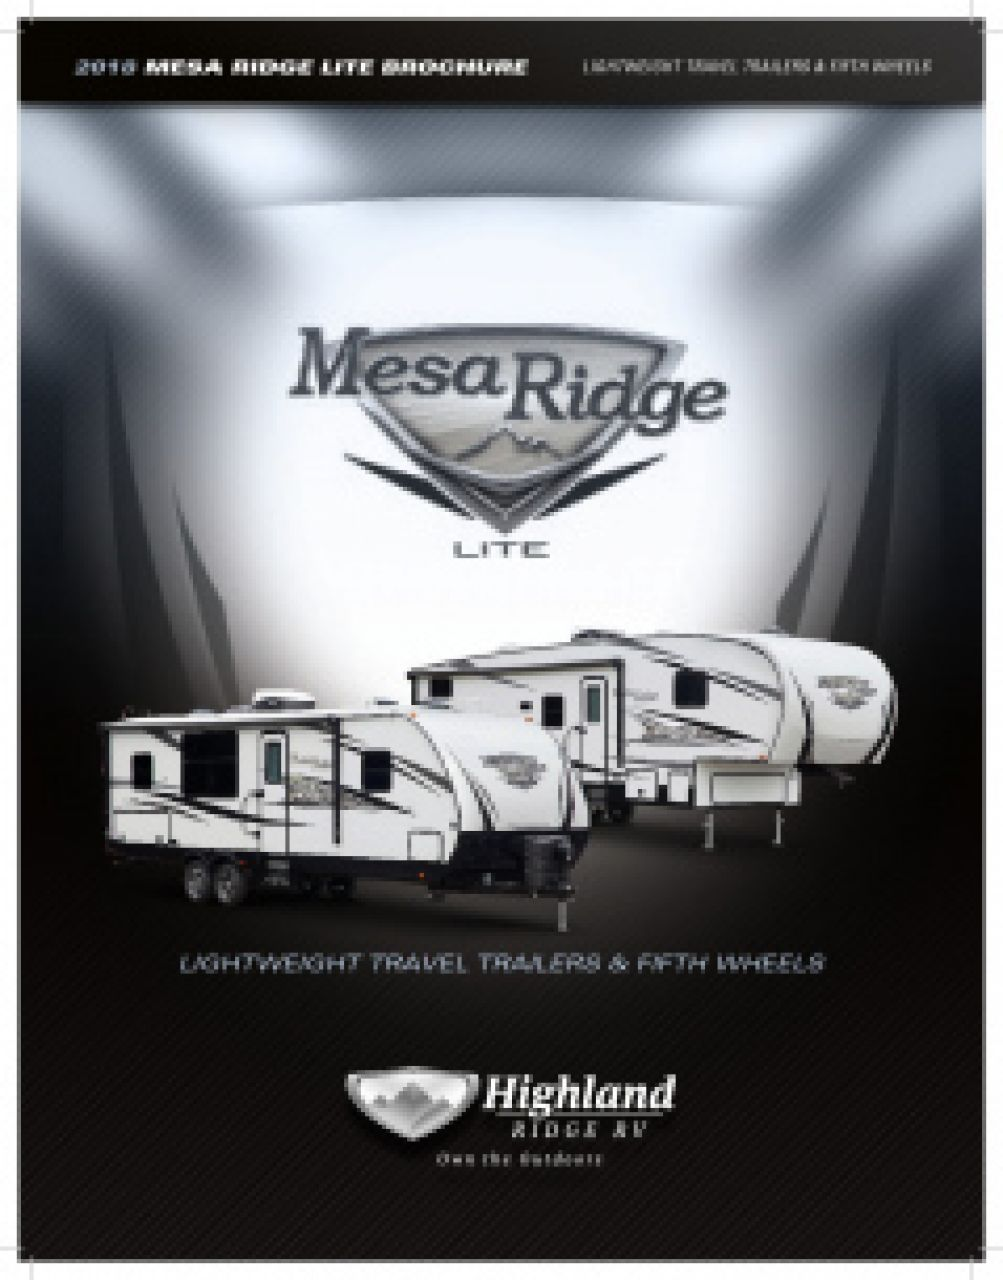 2019 Highland Ridge Mesa Ridge Lite RV Brochure Cover